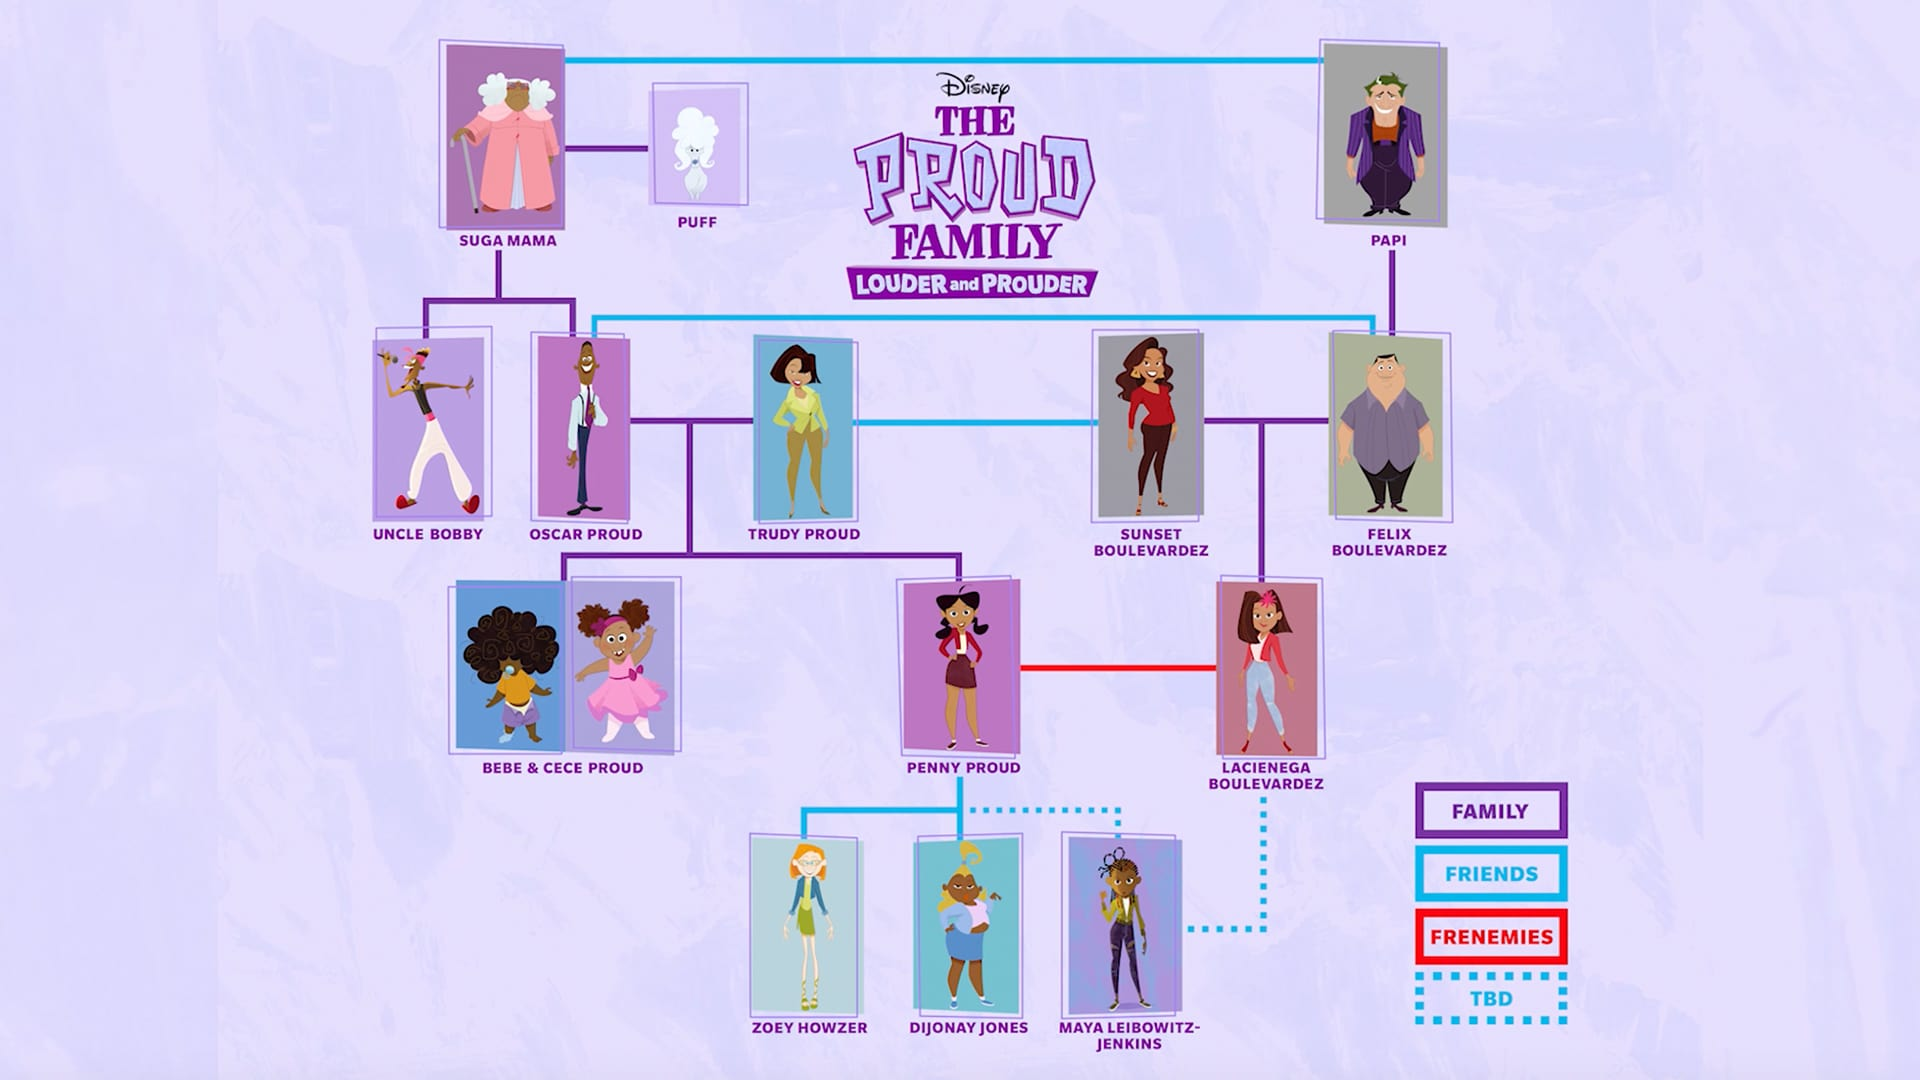 New Family Tree First Look | The Proud Family: Louder and Prouder | Disney+